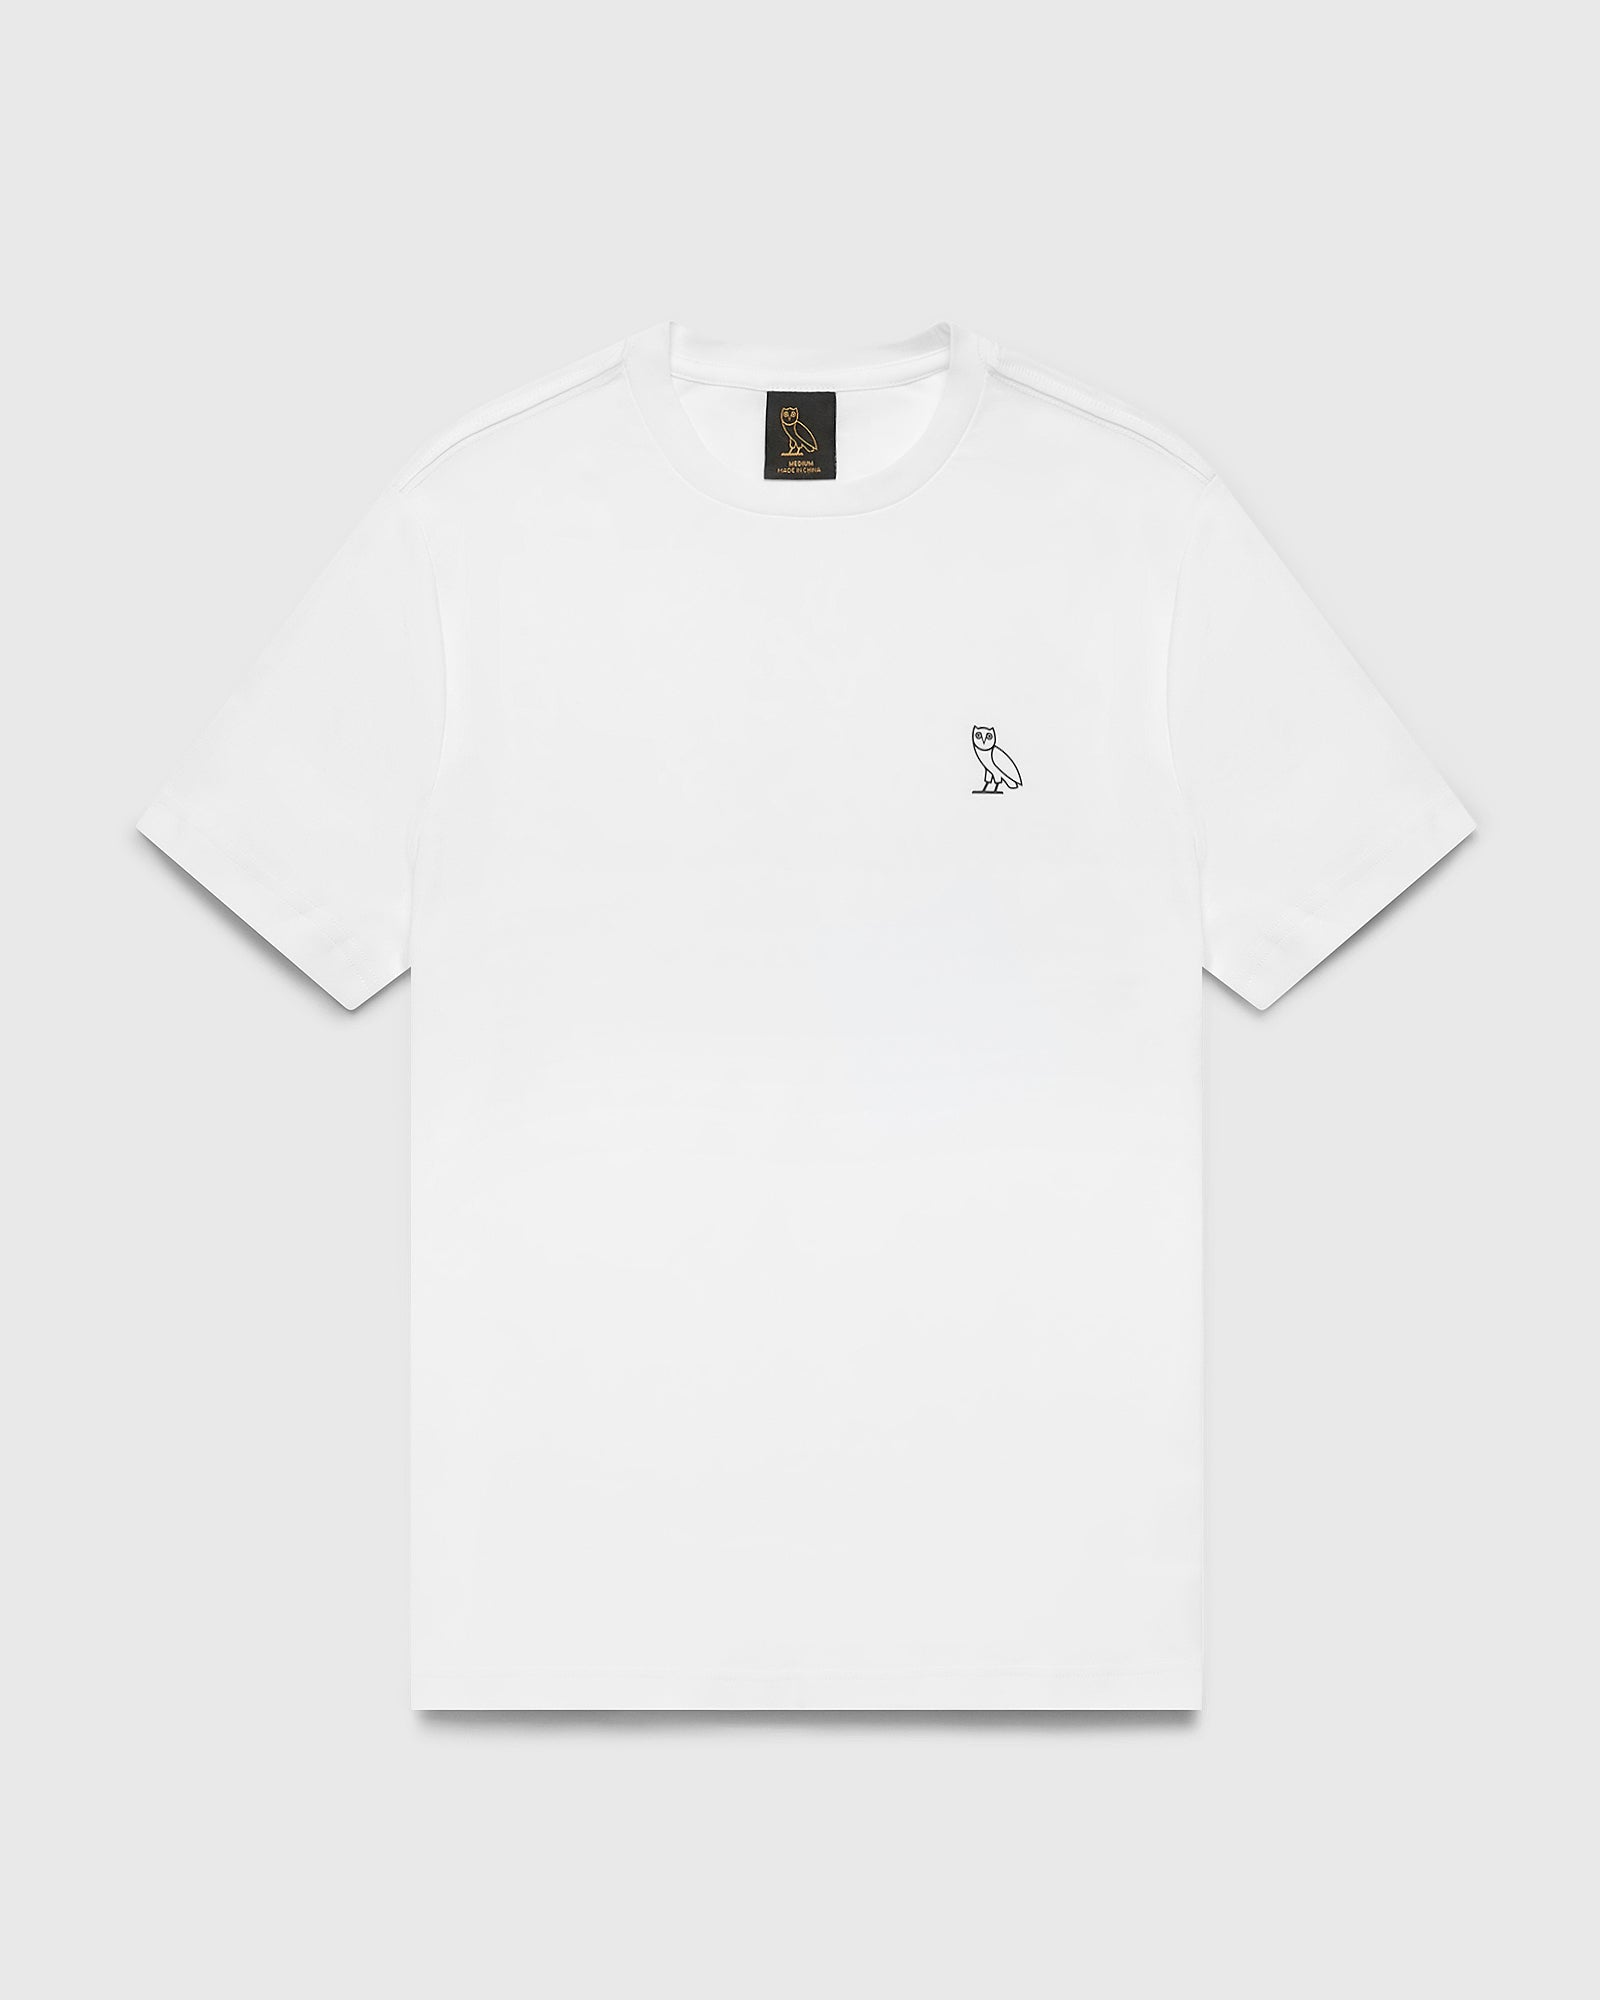 Ovo Essentials T Shirt White October S Very Own Online Us